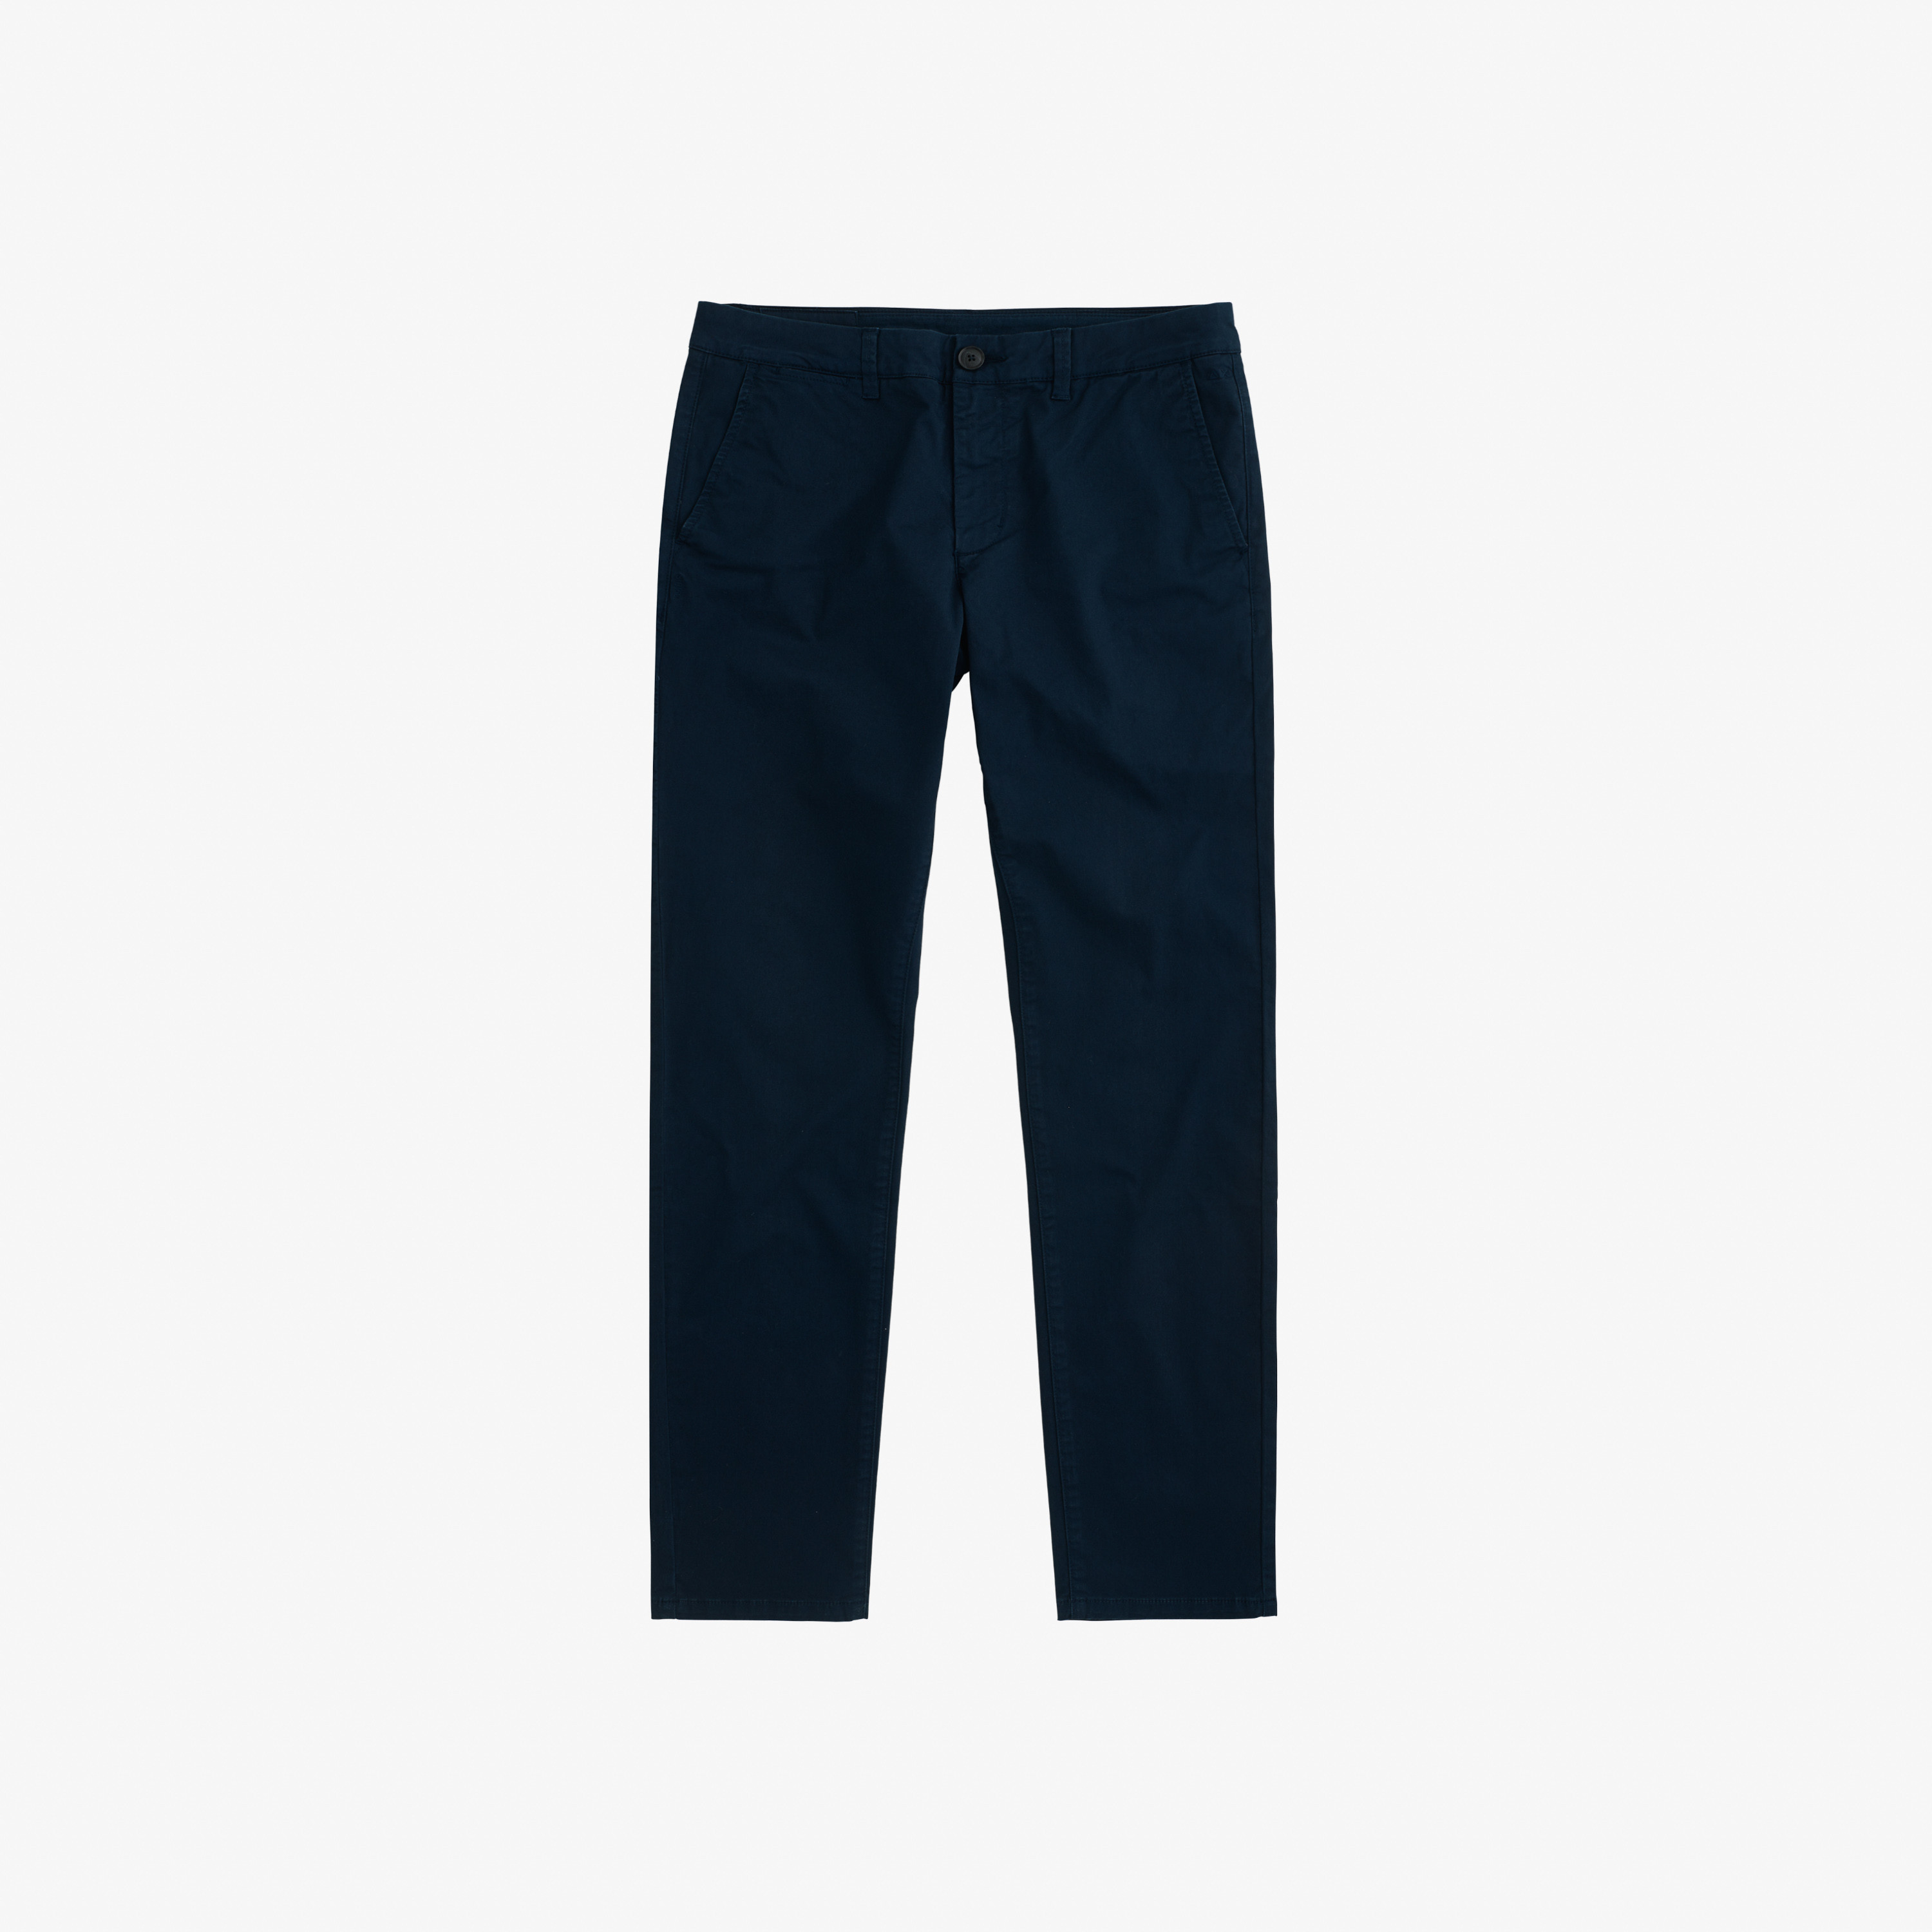 PANT CHINO SLIM NAVY BLUE